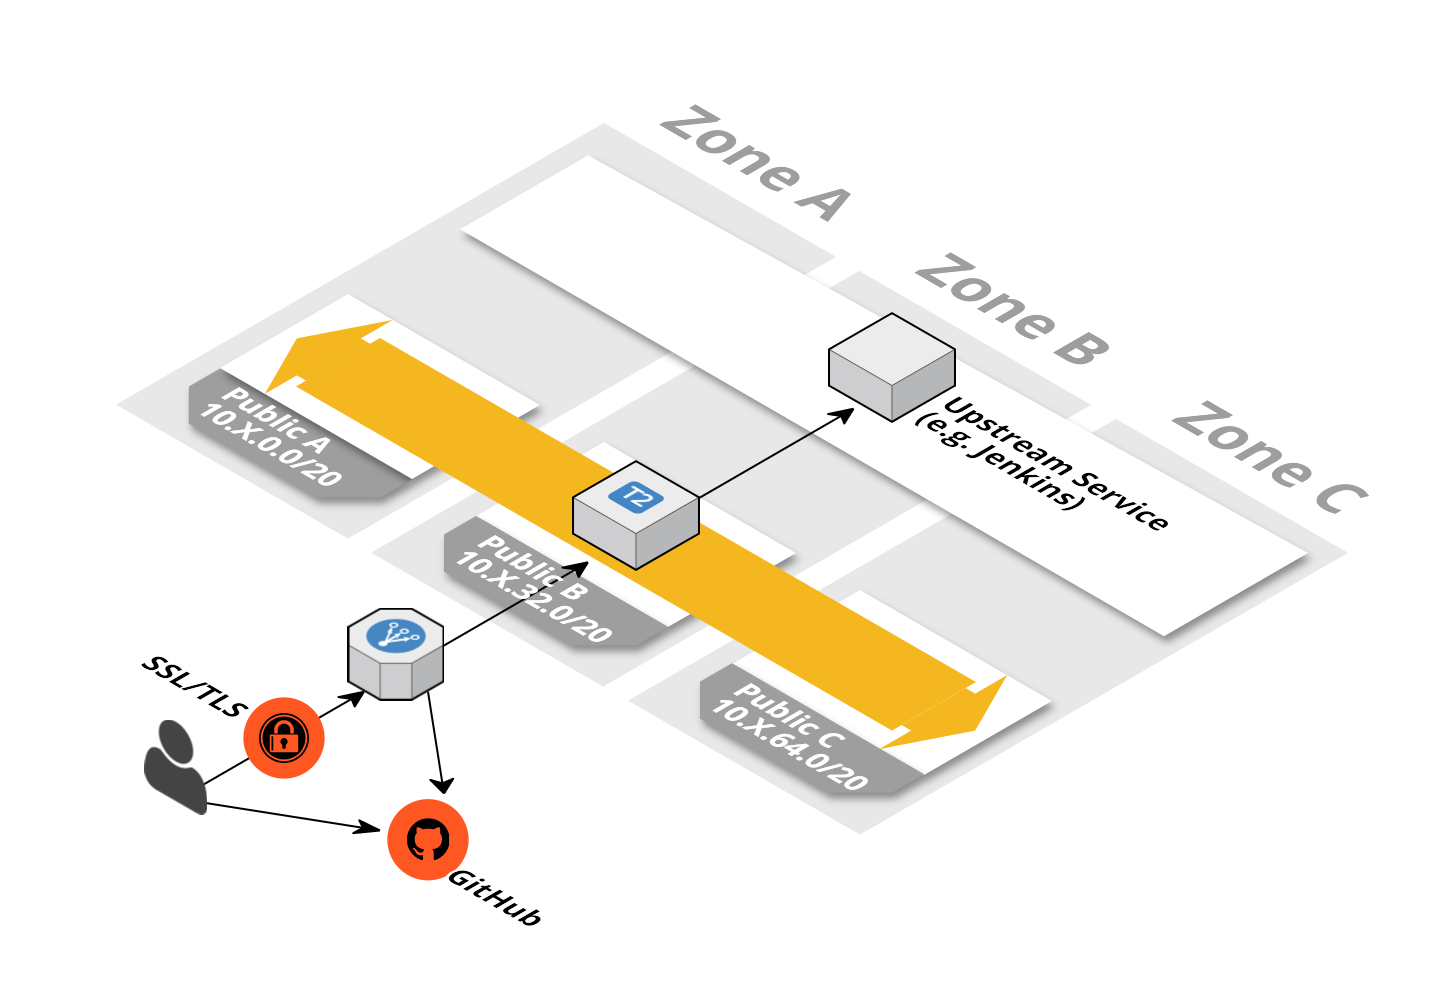 Security - Free Templates for AWS CloudFormation